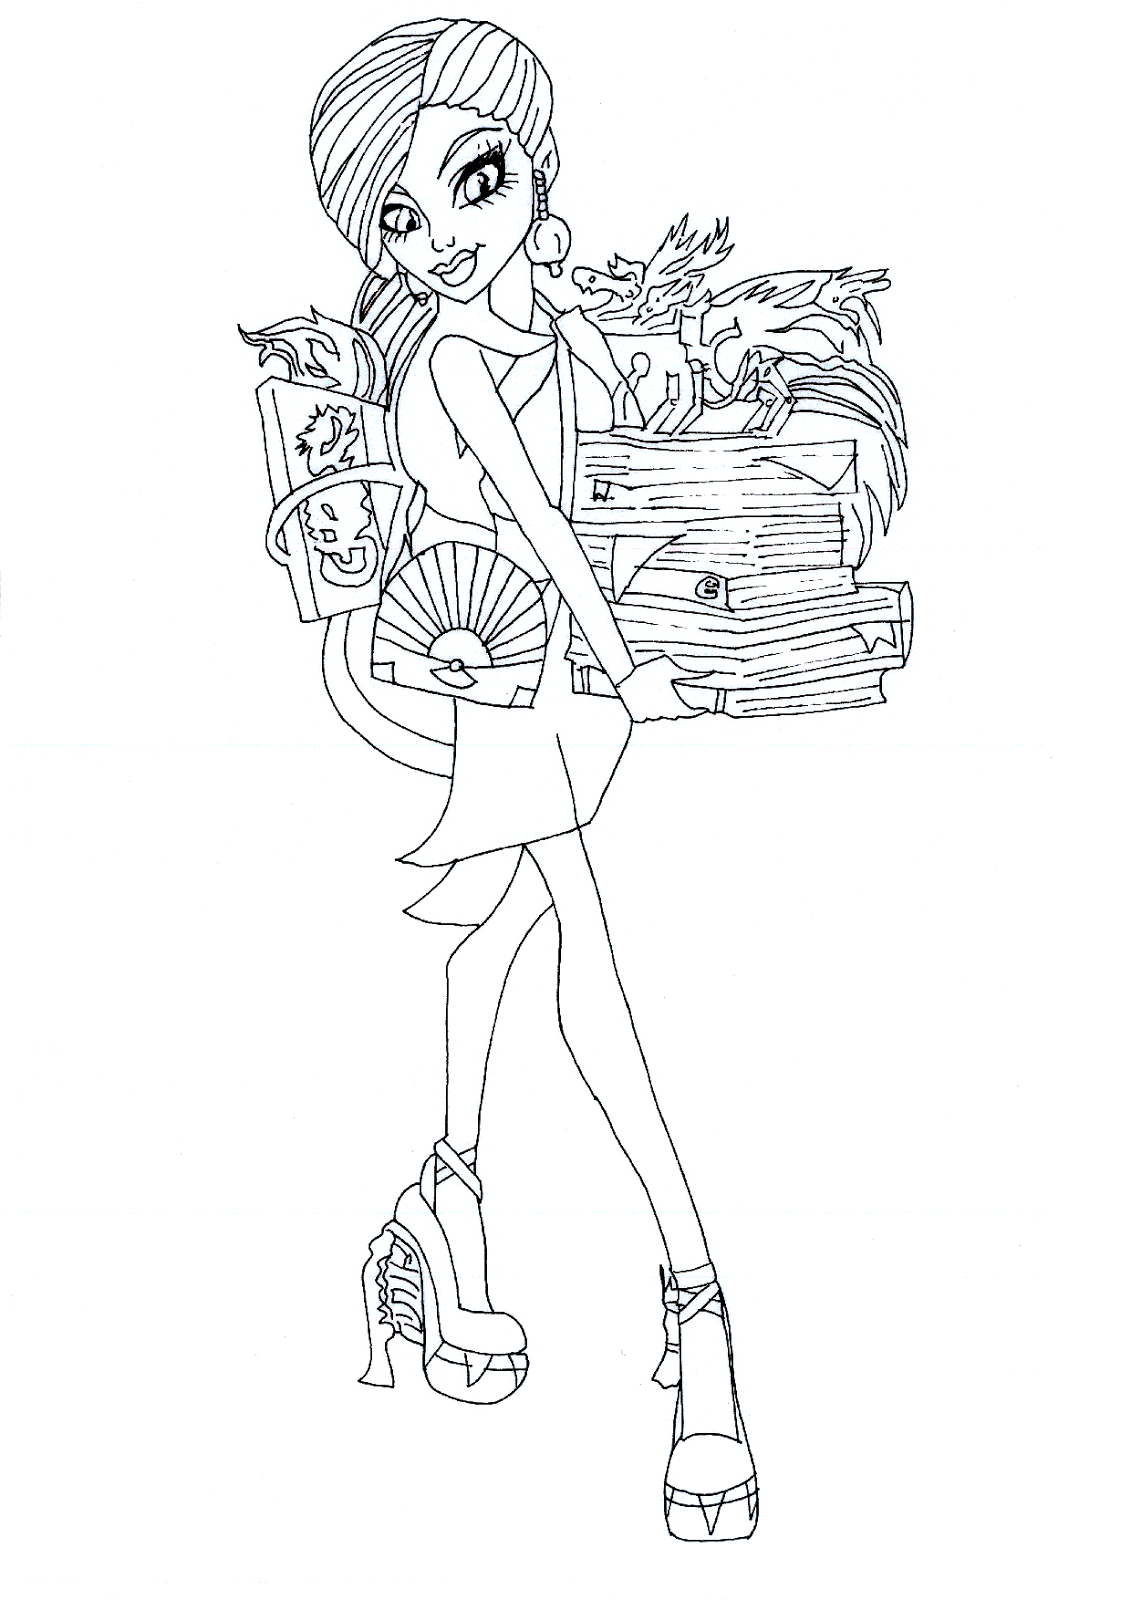 Free Printable Monster High Coloring Pages: Jinafire Long